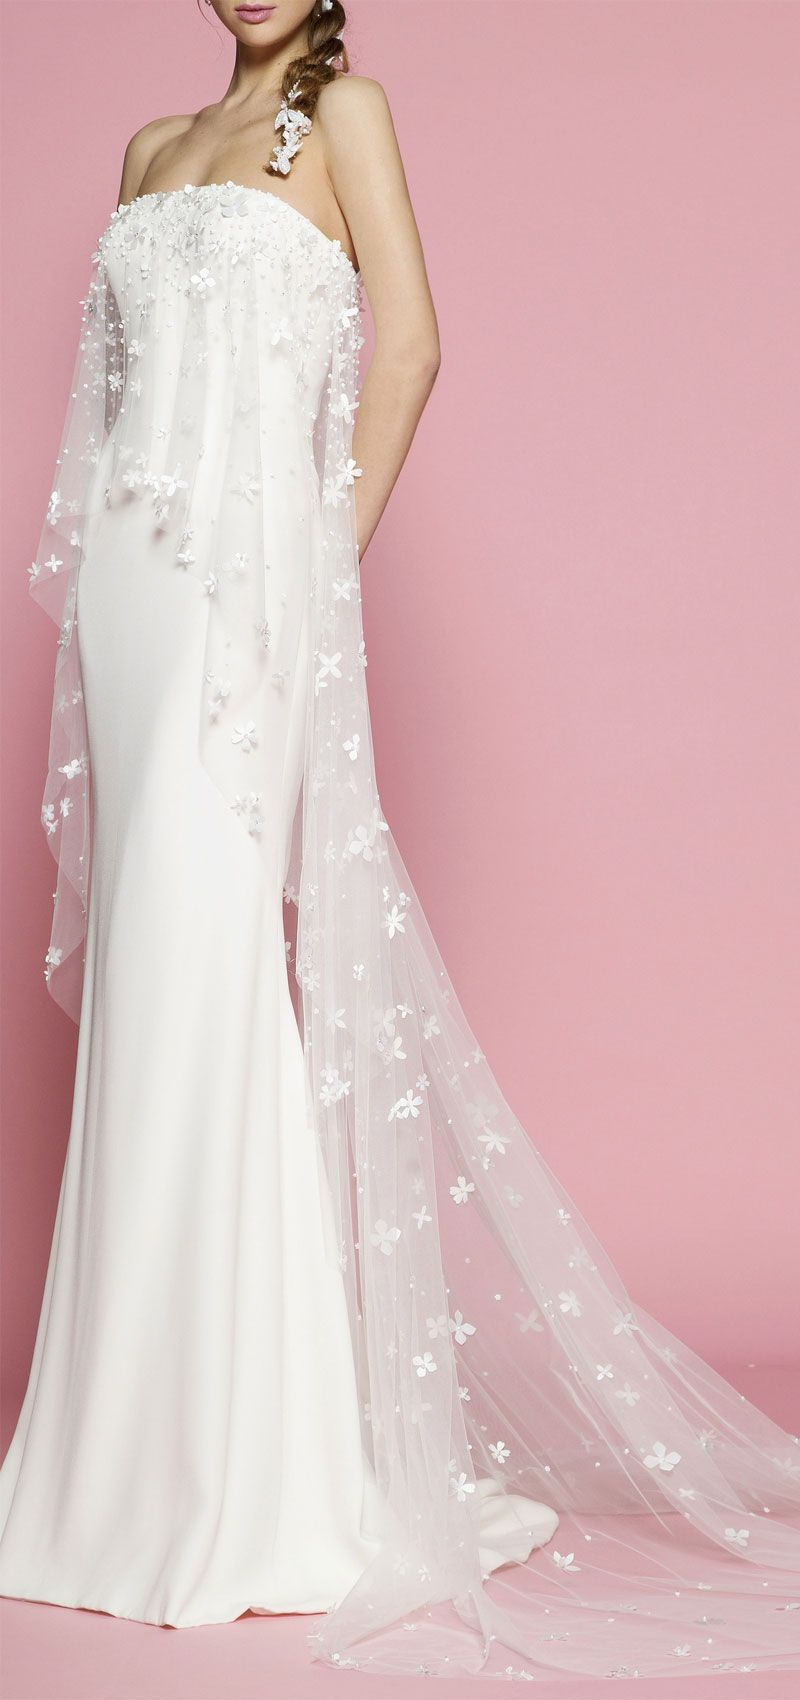 Wedding dress dry cleaning near me  Georges Hobeika Wedding Dresses   Wedding dress Overlay and